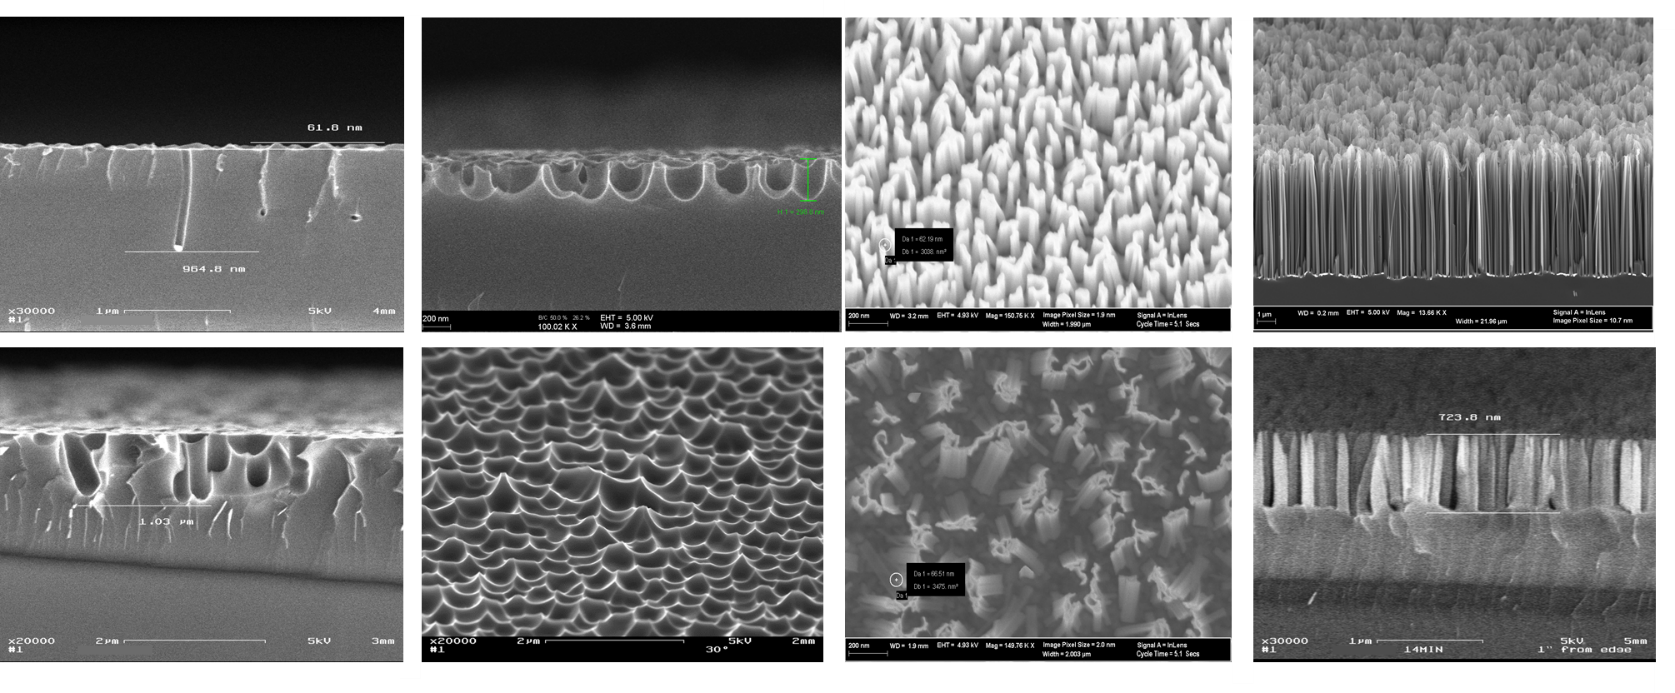 Figure 2: Scanning electron microscope (SEM) pictures of various structures all made by MACE.